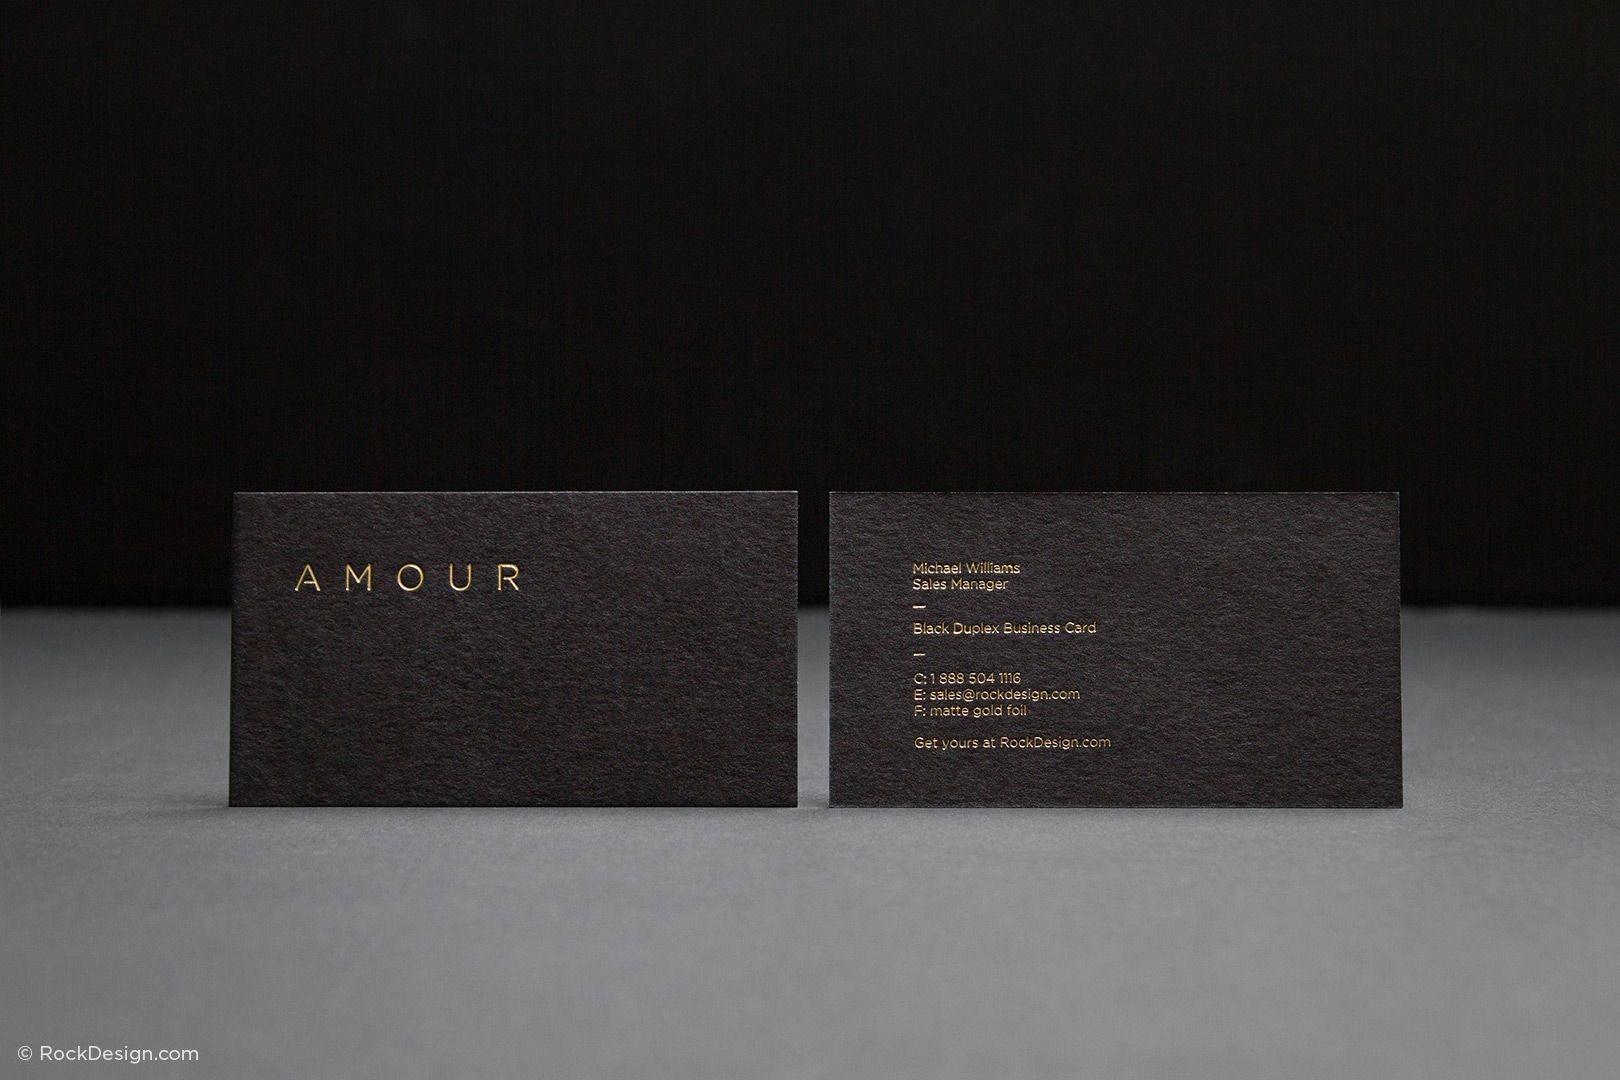 Fancy unique black business card design template amour fancy unique black business card design template amour rockdesign luxury business card printing reheart Gallery